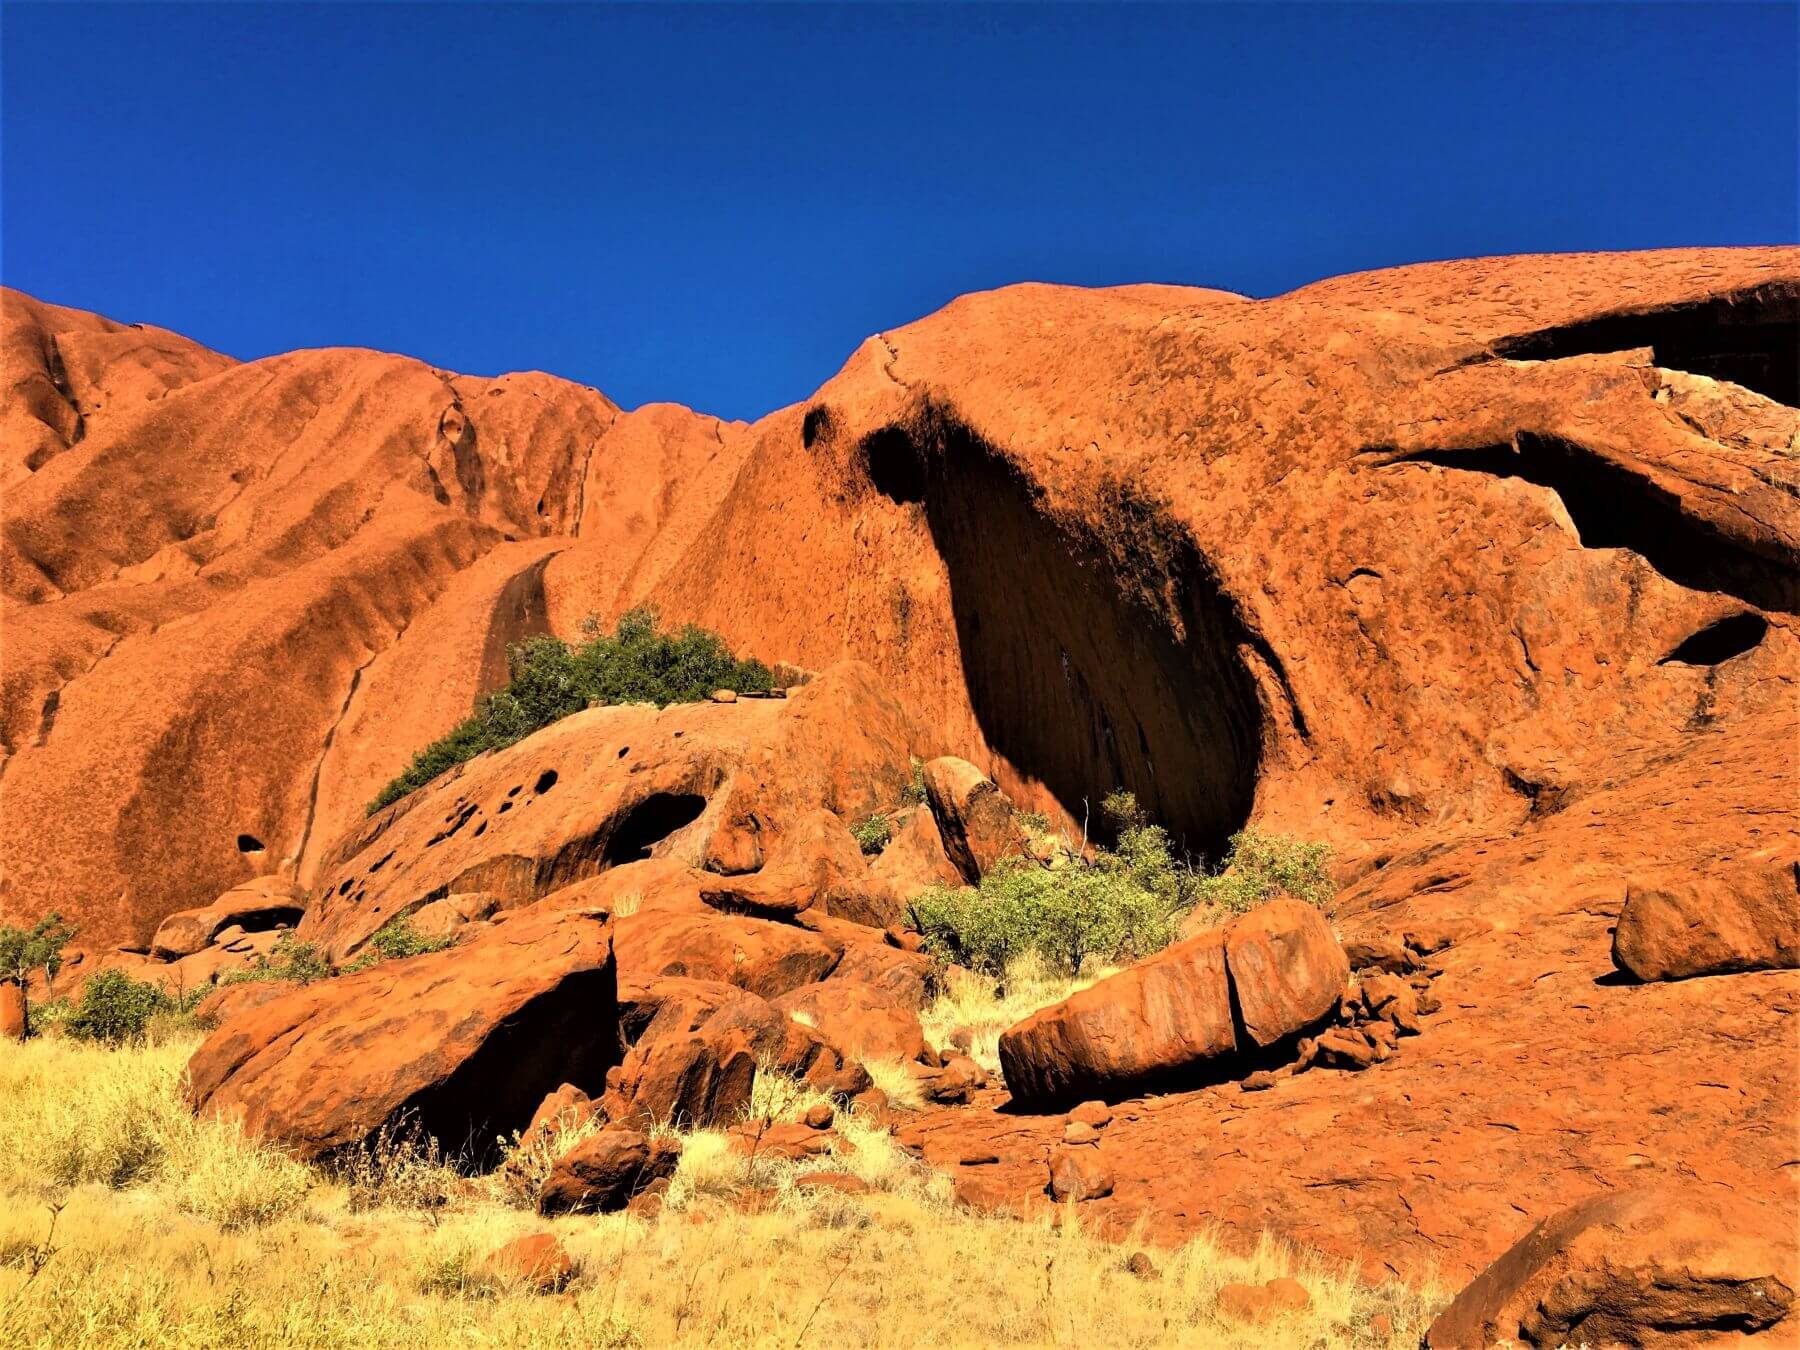 Roter Berg bei Alice Springs in Australien